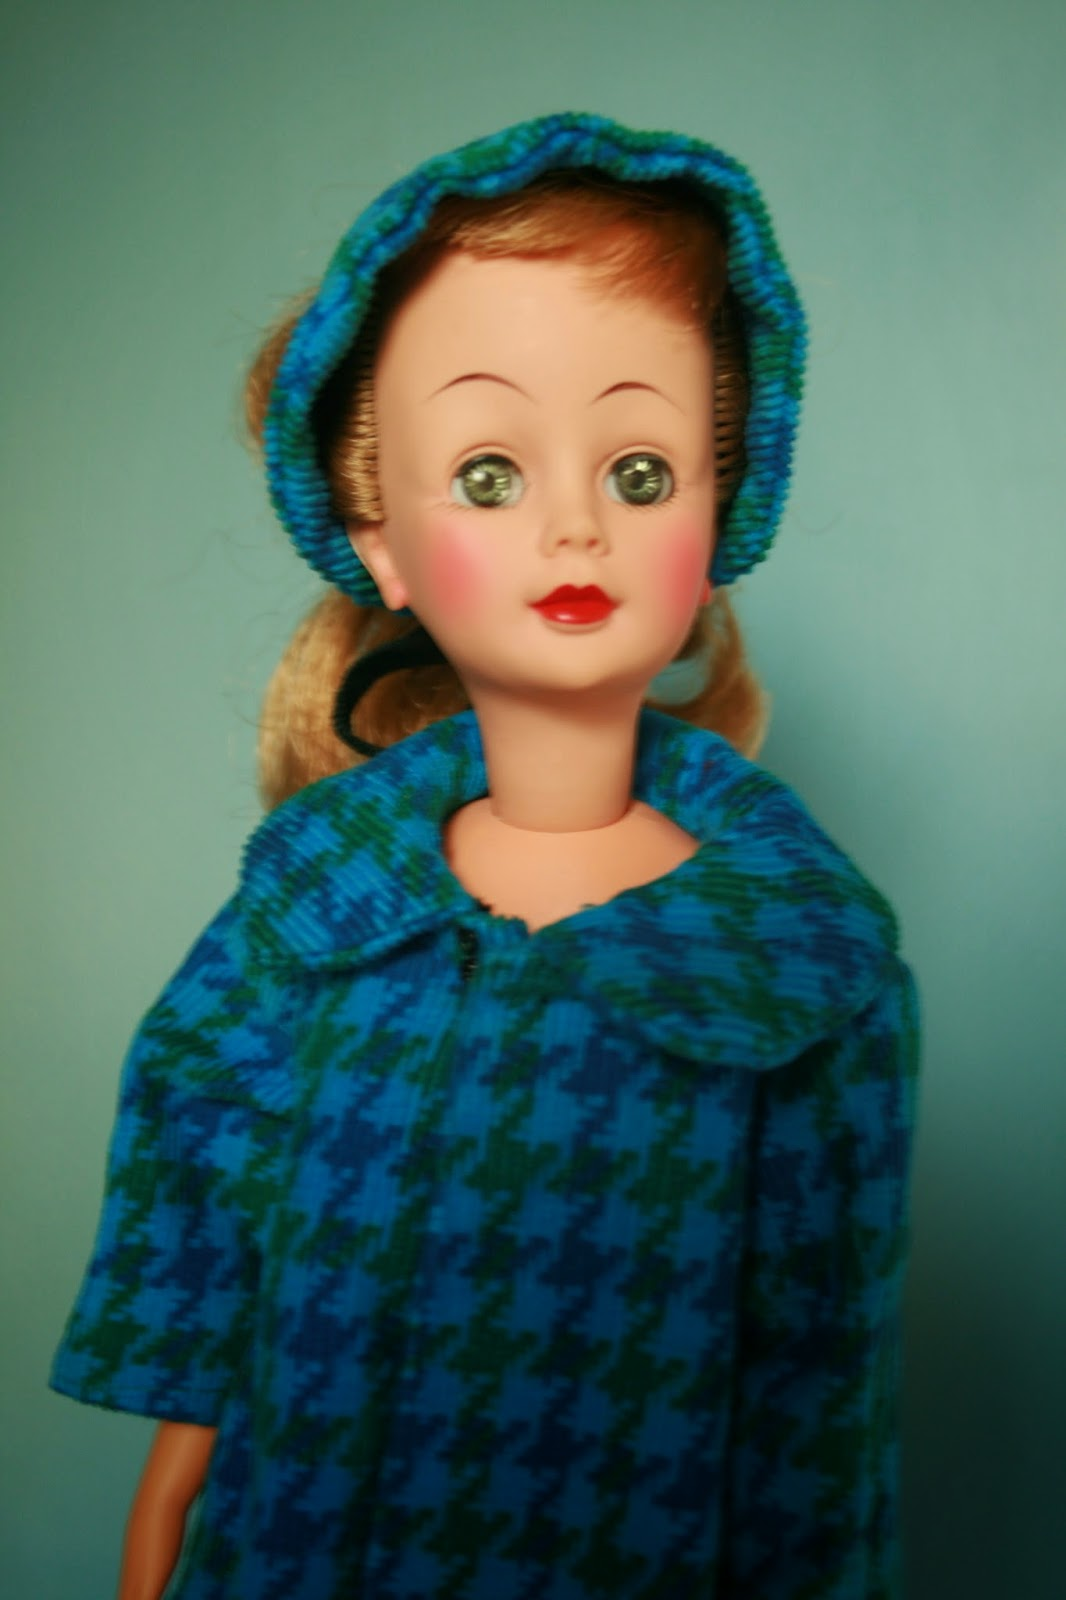 PLANET OF THE DOLLS: Doll-A-Day 234: Jackie by Ideal